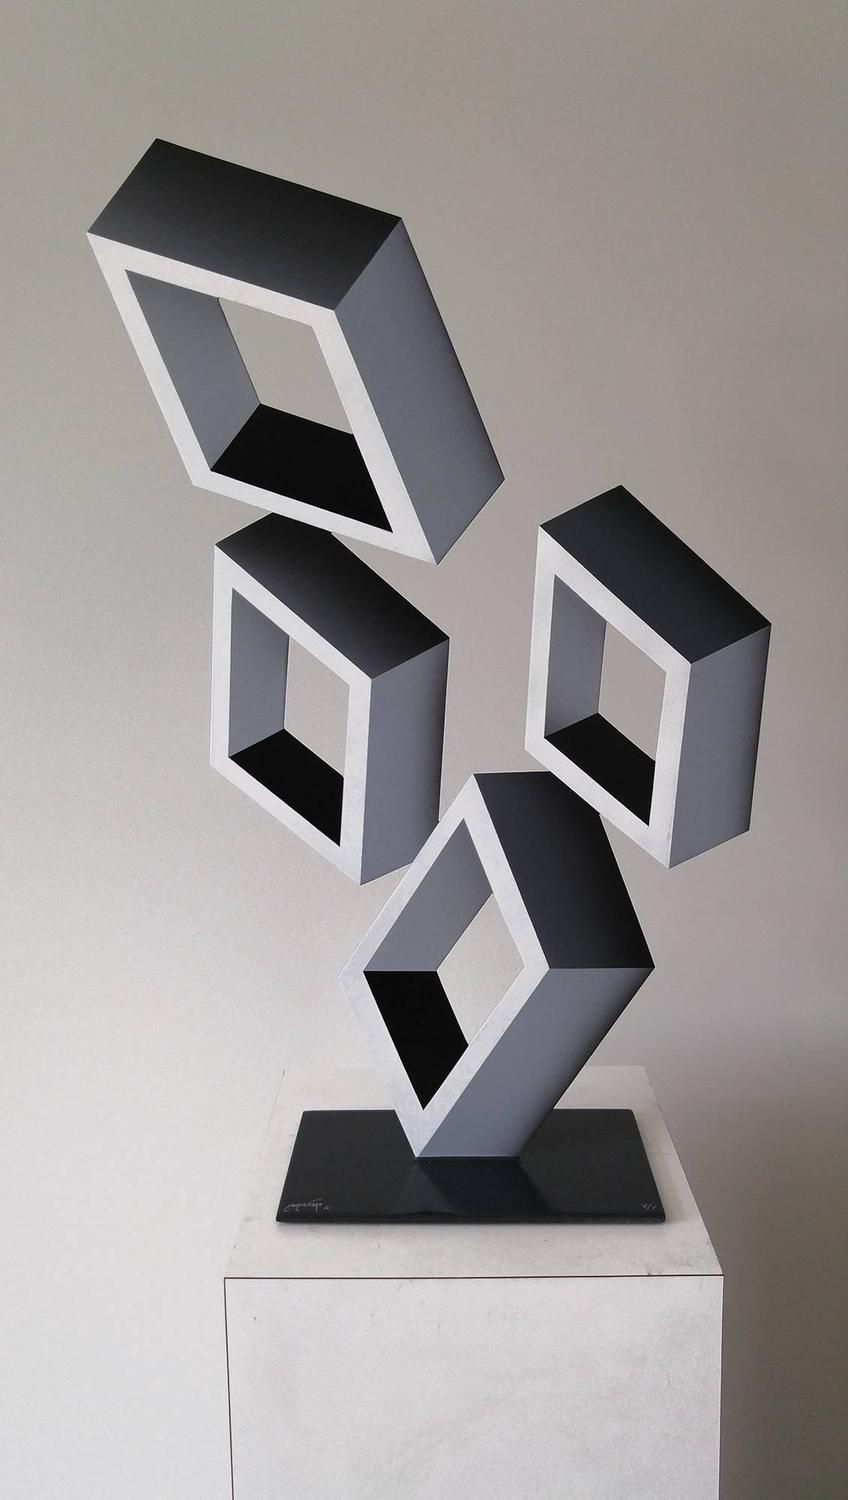 4 White Boxes Illusion Sculpture Painted Metal Sculpture Metallic Paint Metal Sculpture